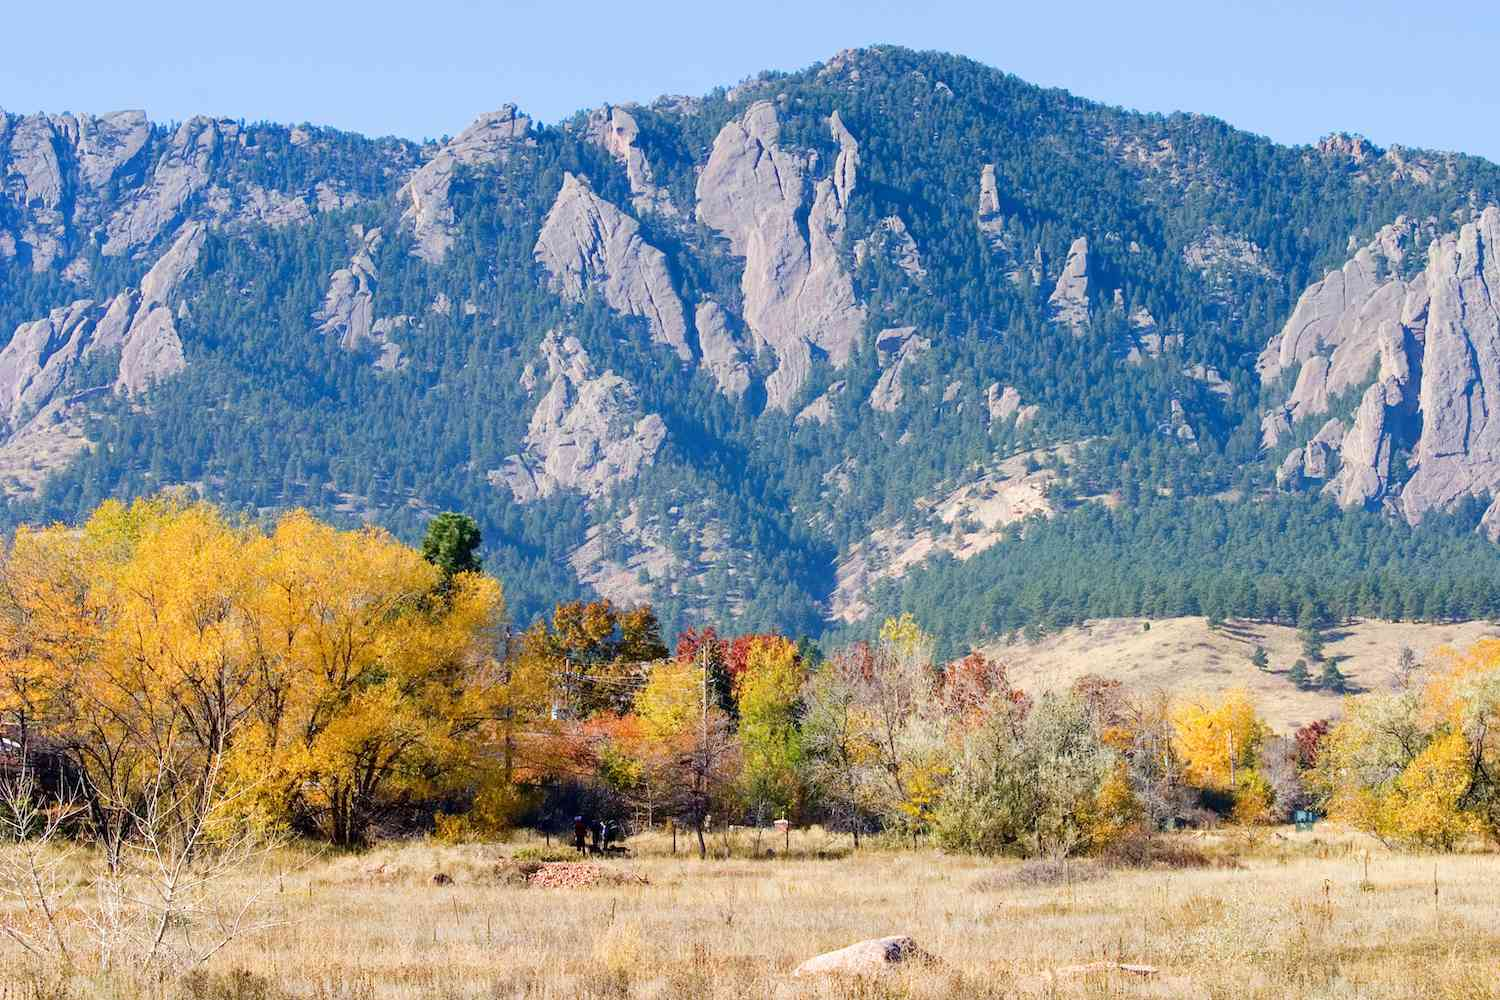 Autumnal colors dress the landscape in front of a looming mountain in Boulder